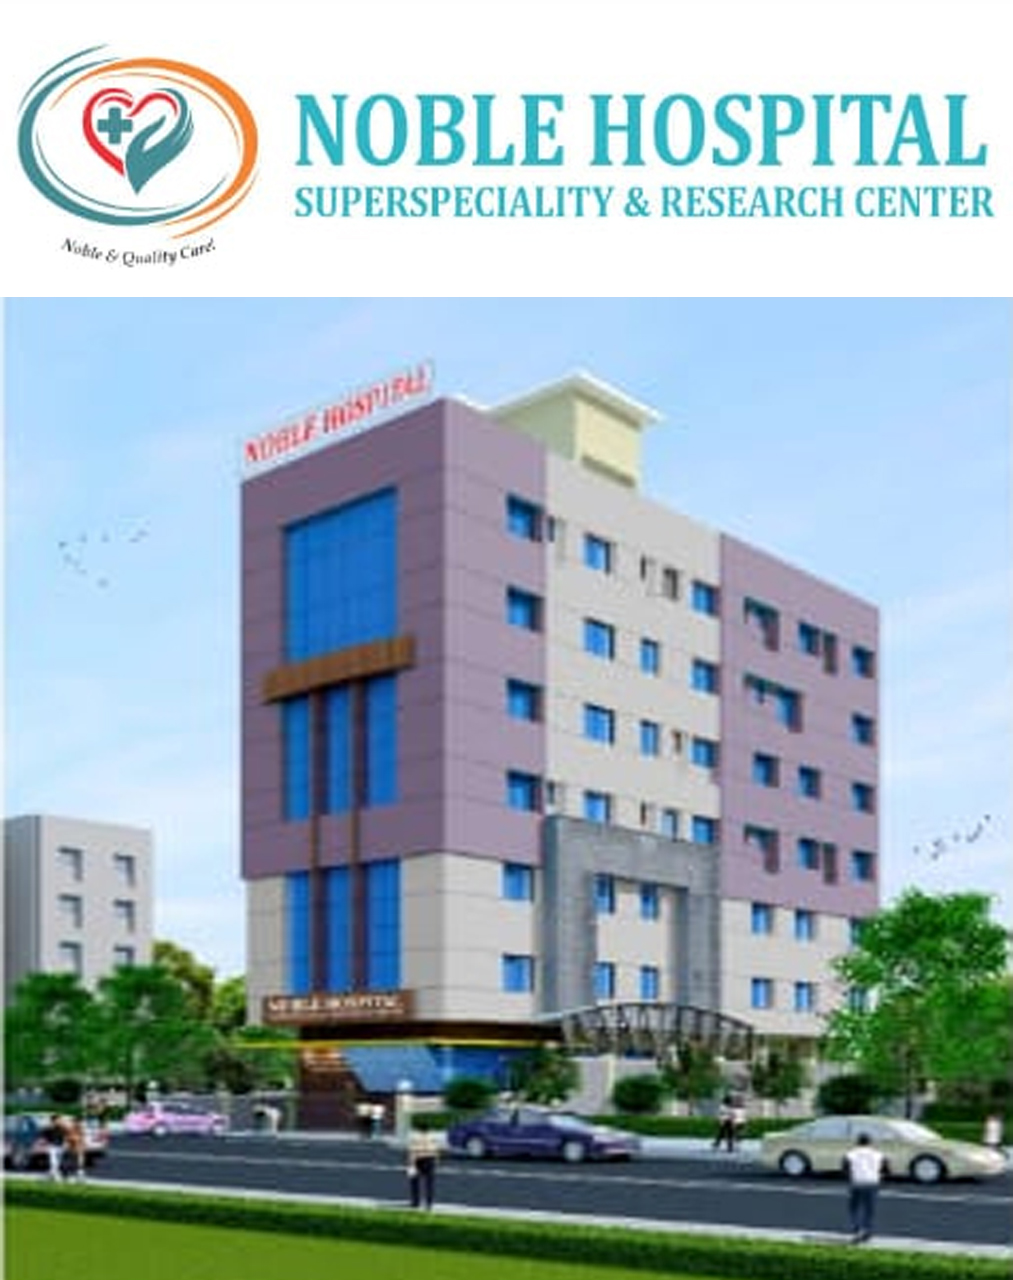 NOBLE HOSPITAL <BR> SUPERSPECIALITY & RESEARCH CENTER